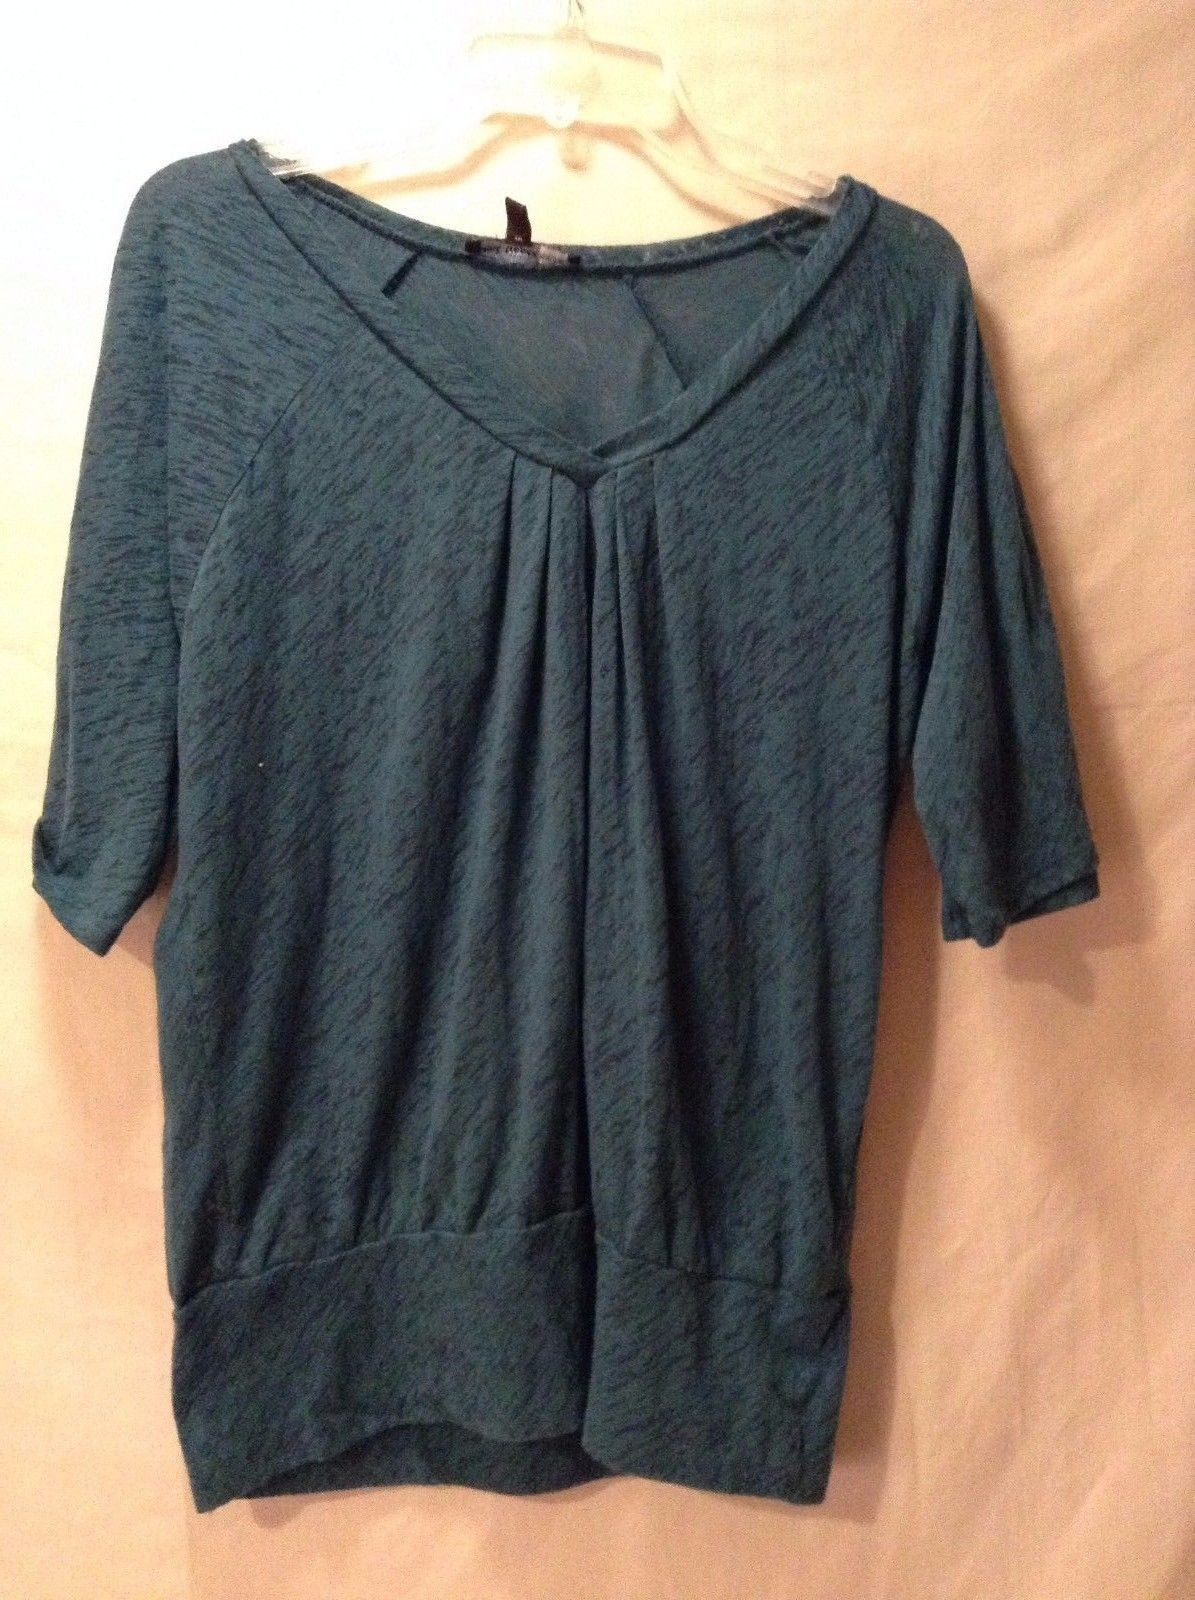 Women's Saint Tropez West Blue Green V-Neck Short Sleeve Top Size Medium